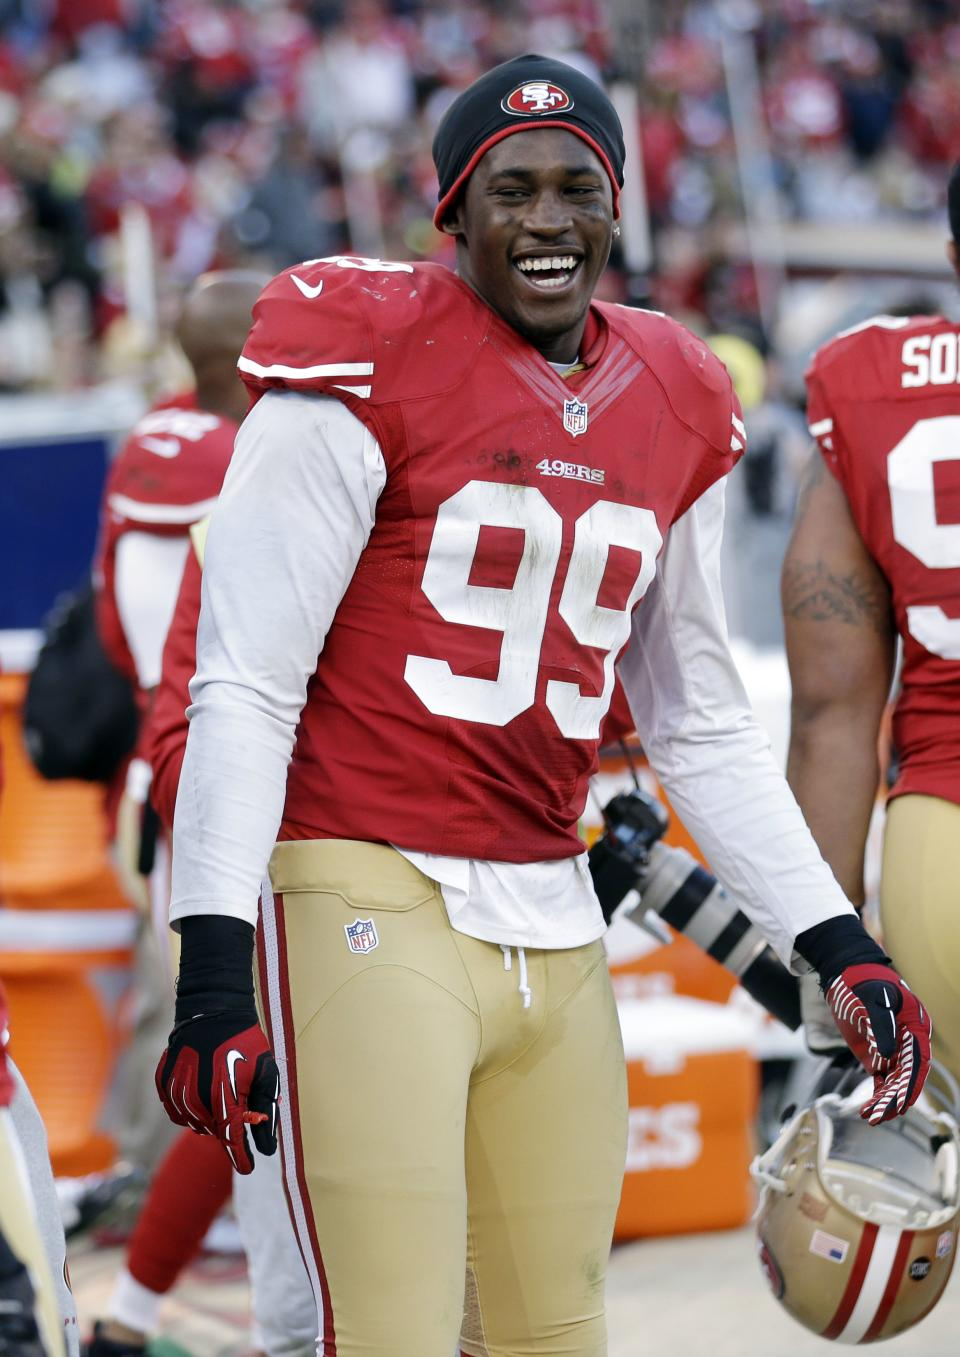 San Francisco 49ers outside linebacker Aldon Smith (99) smiles near the end of an NFL football game against the Arizona Cardinals in San Francisco, Sunday, Dec. 30, 2012. San Francisco won won 27-13. (AP Photo/Marcio Jose Sanchez)